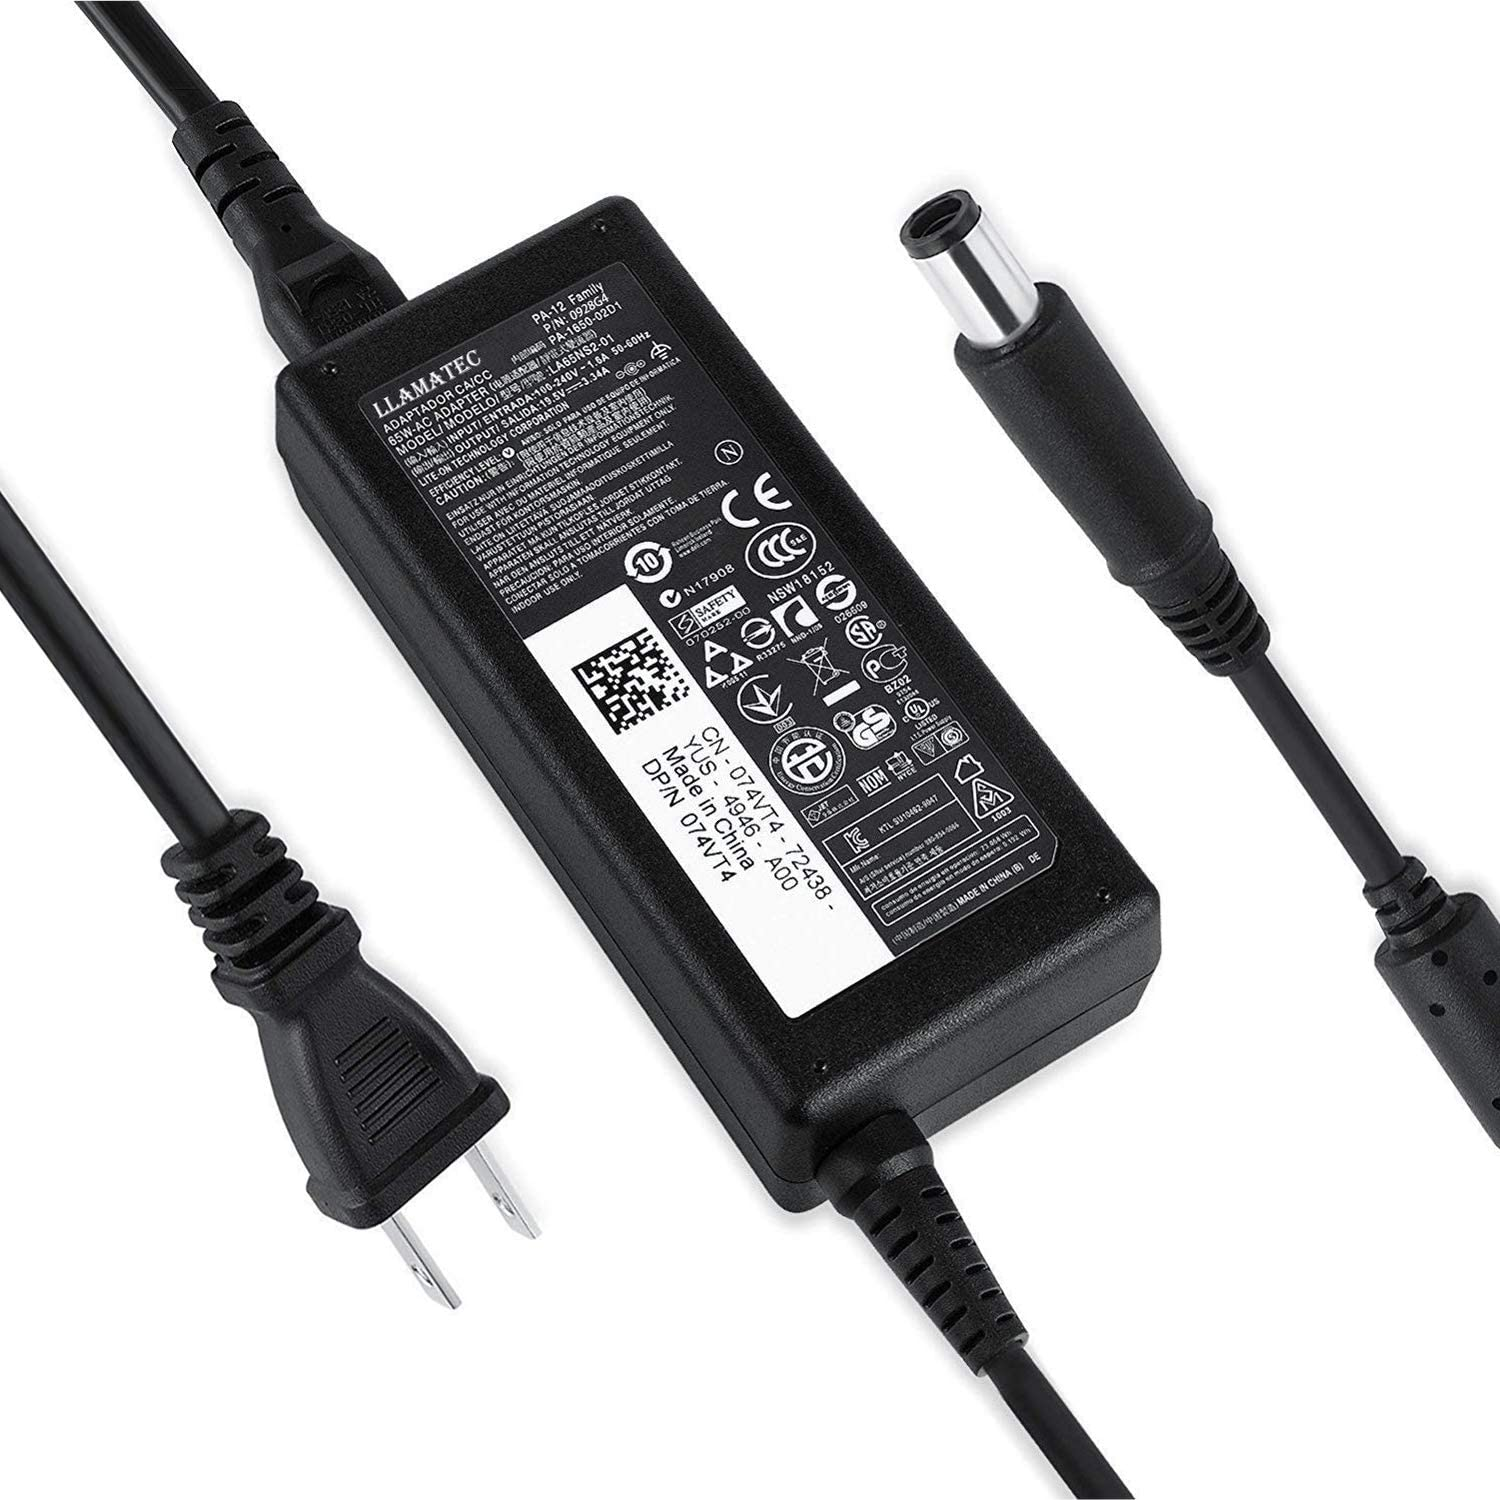 65W AC Charger for PA-12 DA65NM111-00 LA65NS2-01 HA65NS5-00 Dell Inspiron 13 14 15 17 3000 5000 7000 Series,Latitude 11 3189 3180 3580 3588 5288 5488 3480 3488 Laptop Power Supply Spare Adapter